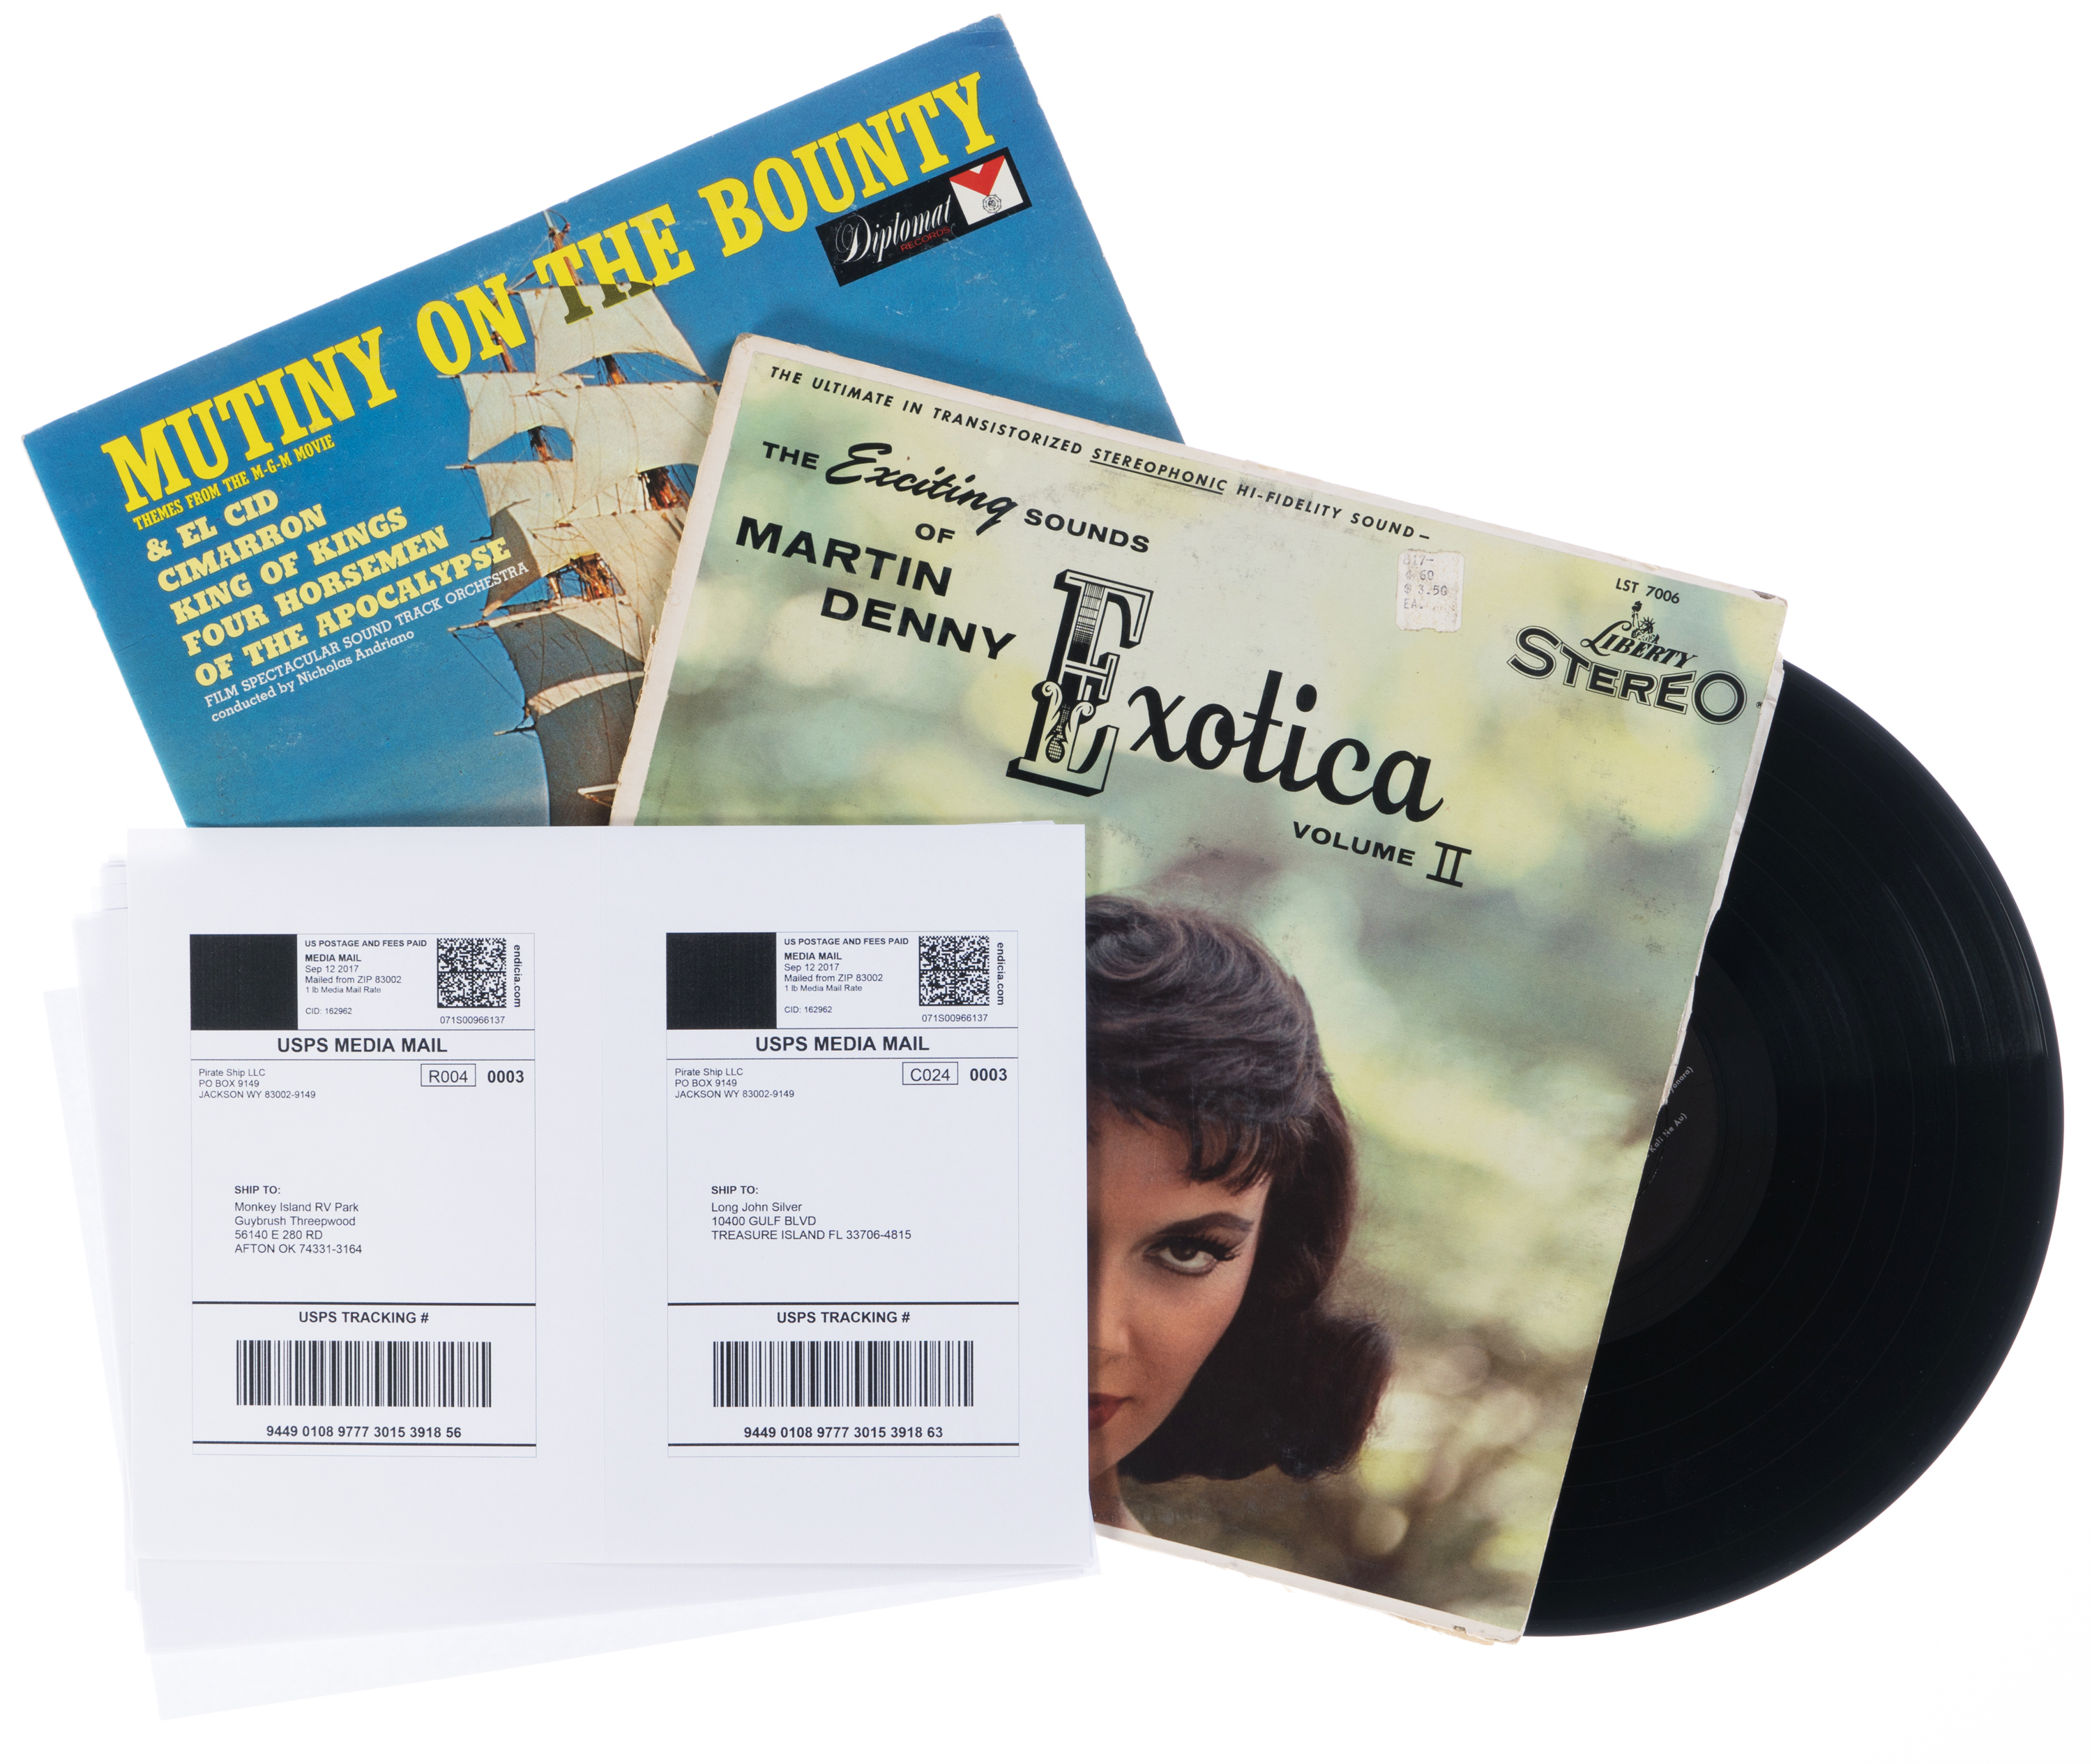 USPS Media Mail labels used to ship vinyl records